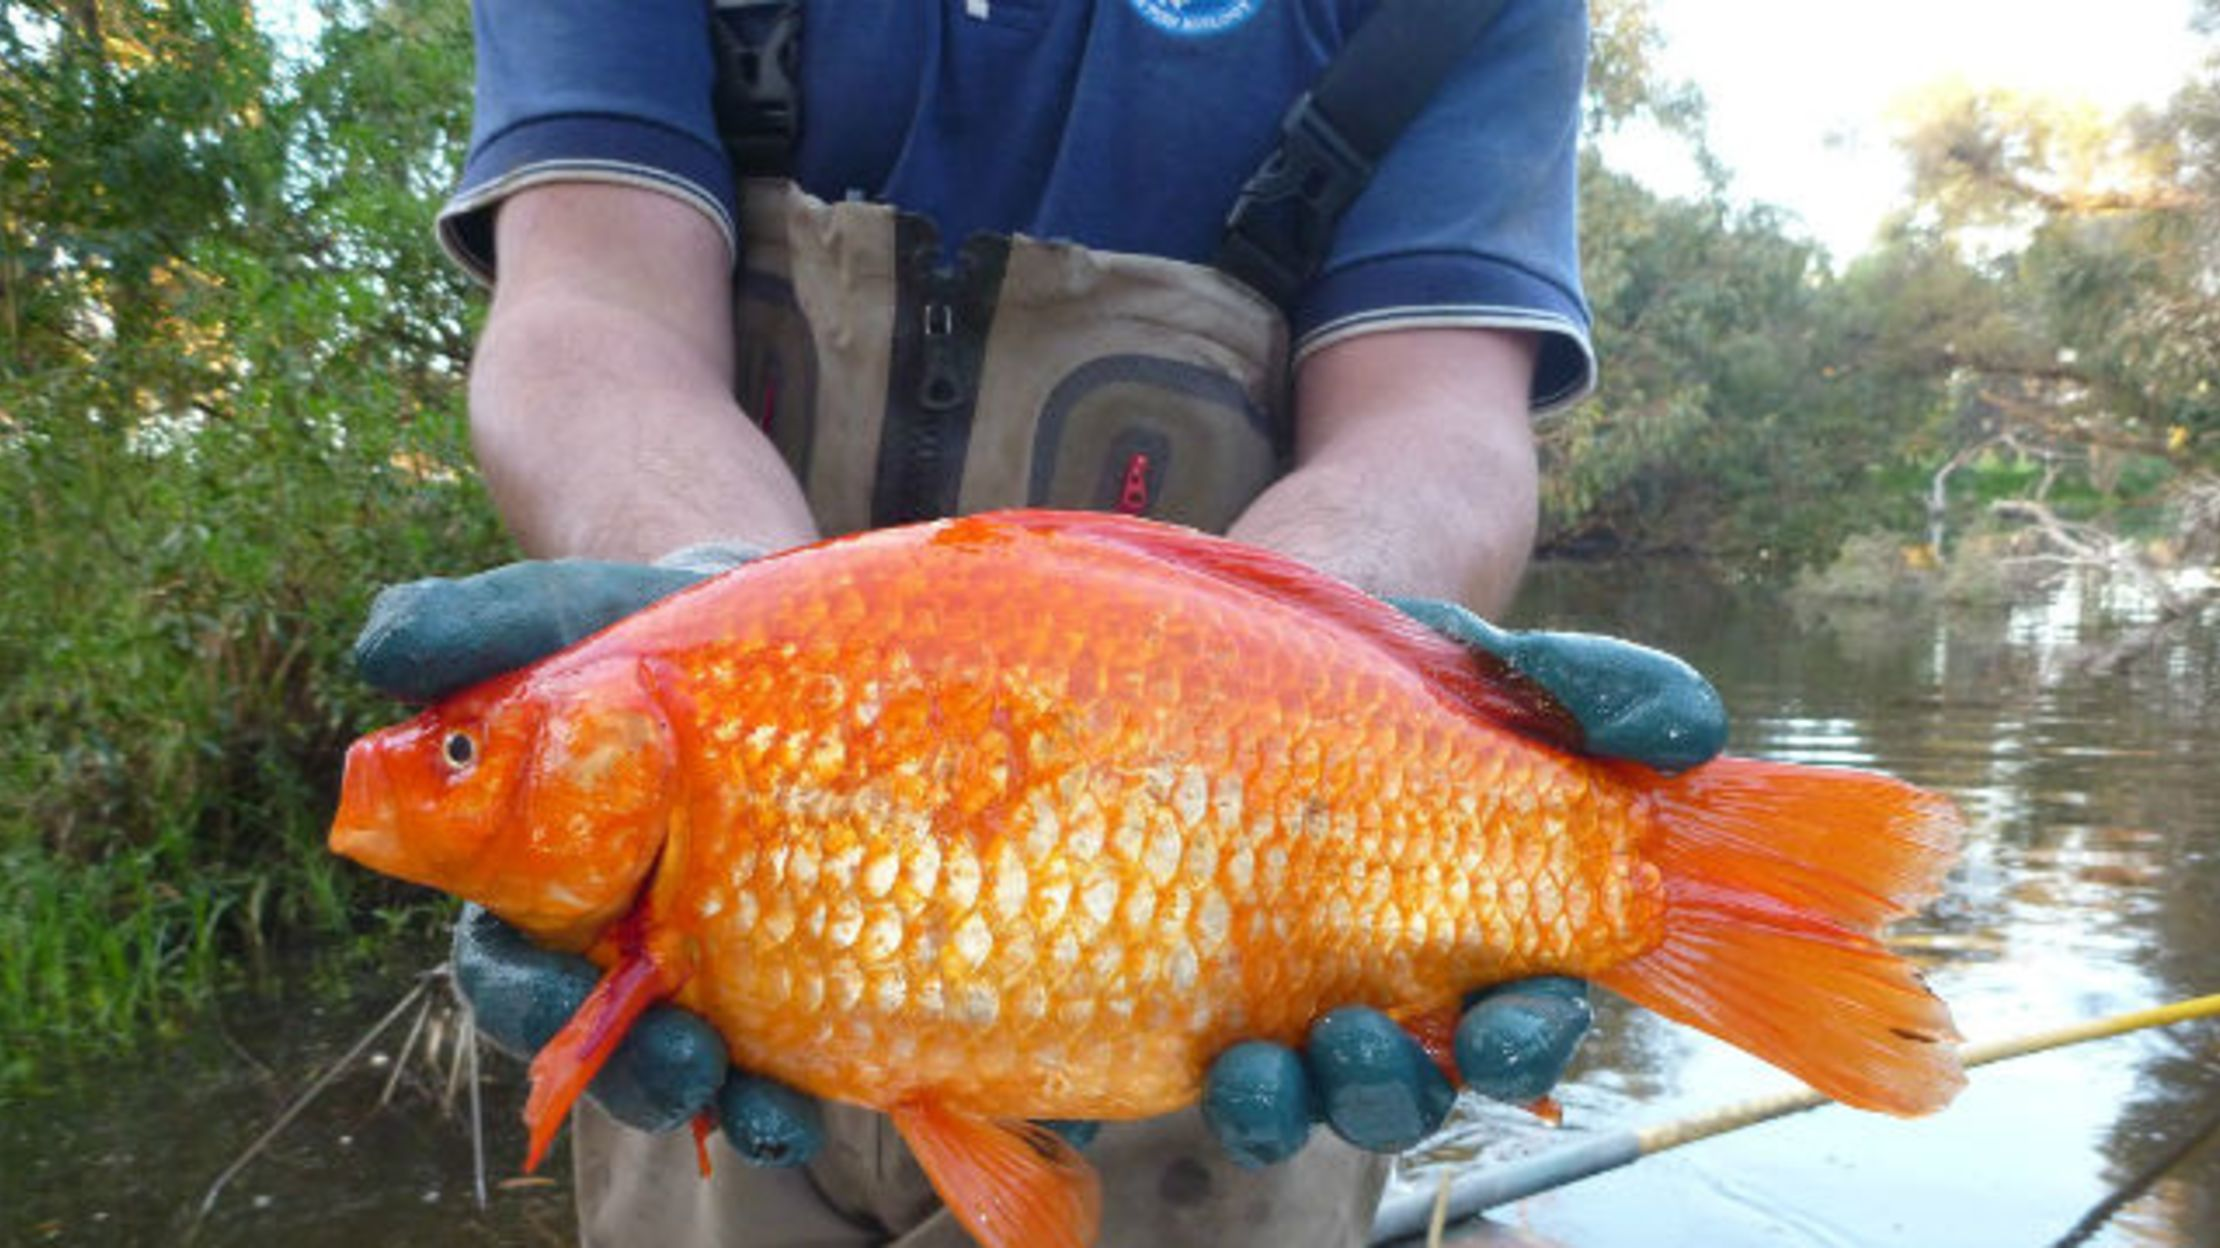 Australia Is Having a Giant Goldfish Problem